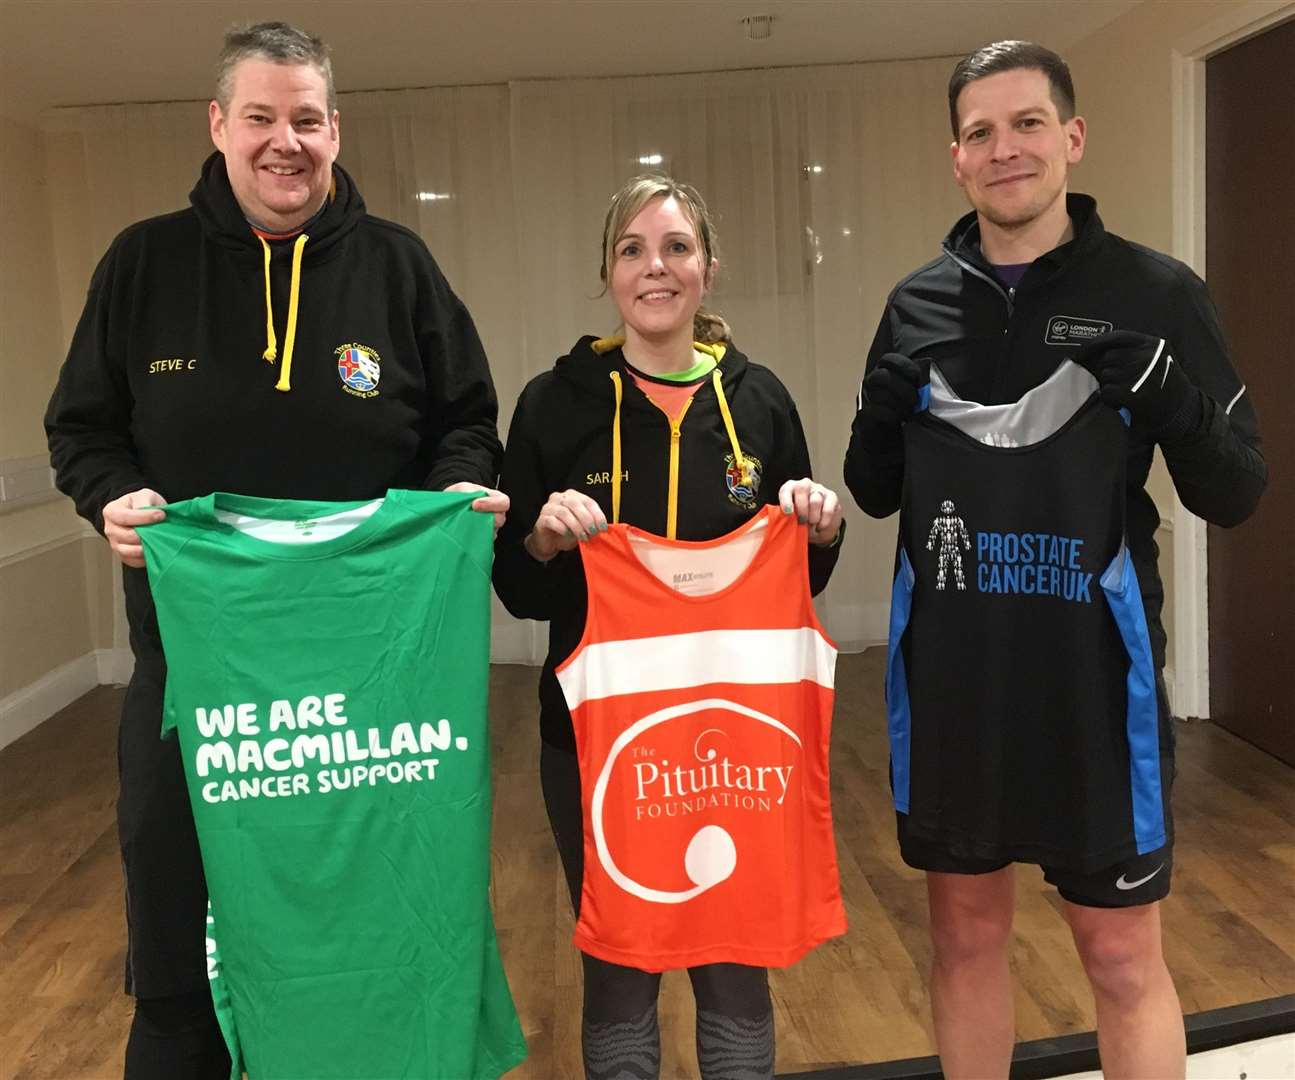 Steve Clarke, Sarah Johnson and Graham Rushmer with their charity vests ready for London landmarks Half (6961036)